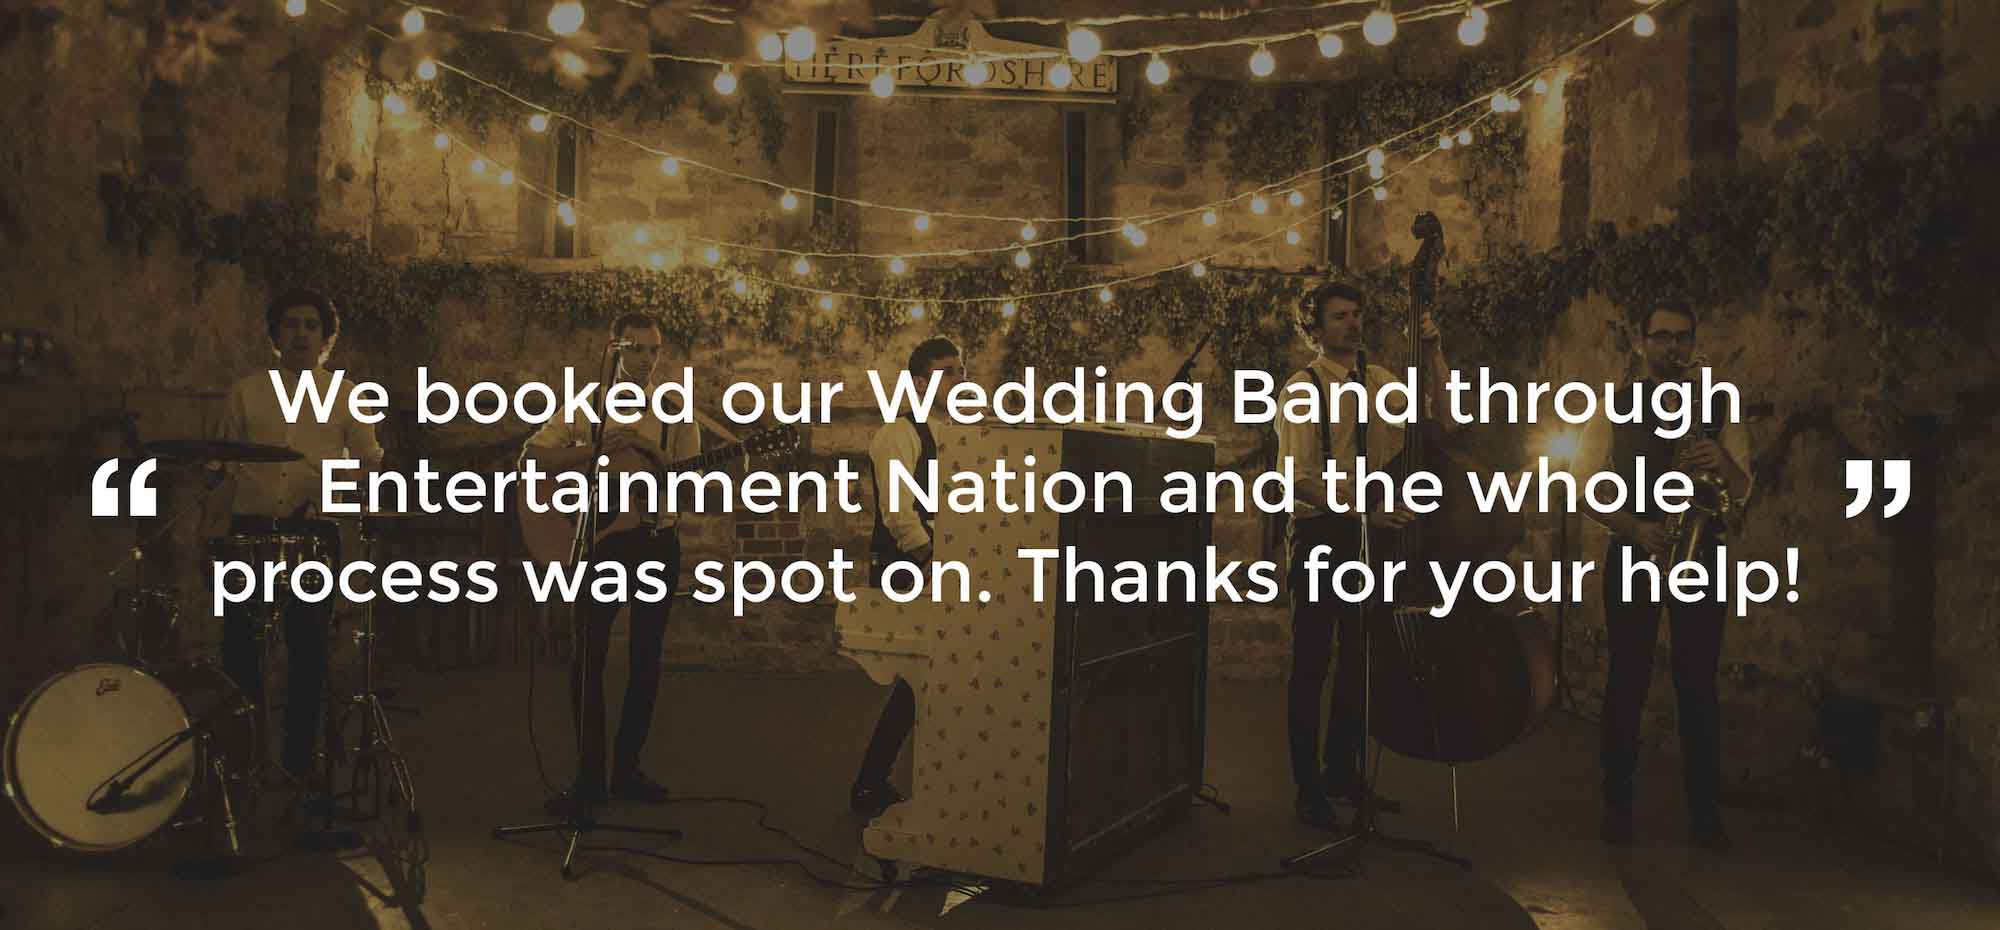 Client Review of a Wedding Band Monmouthshire